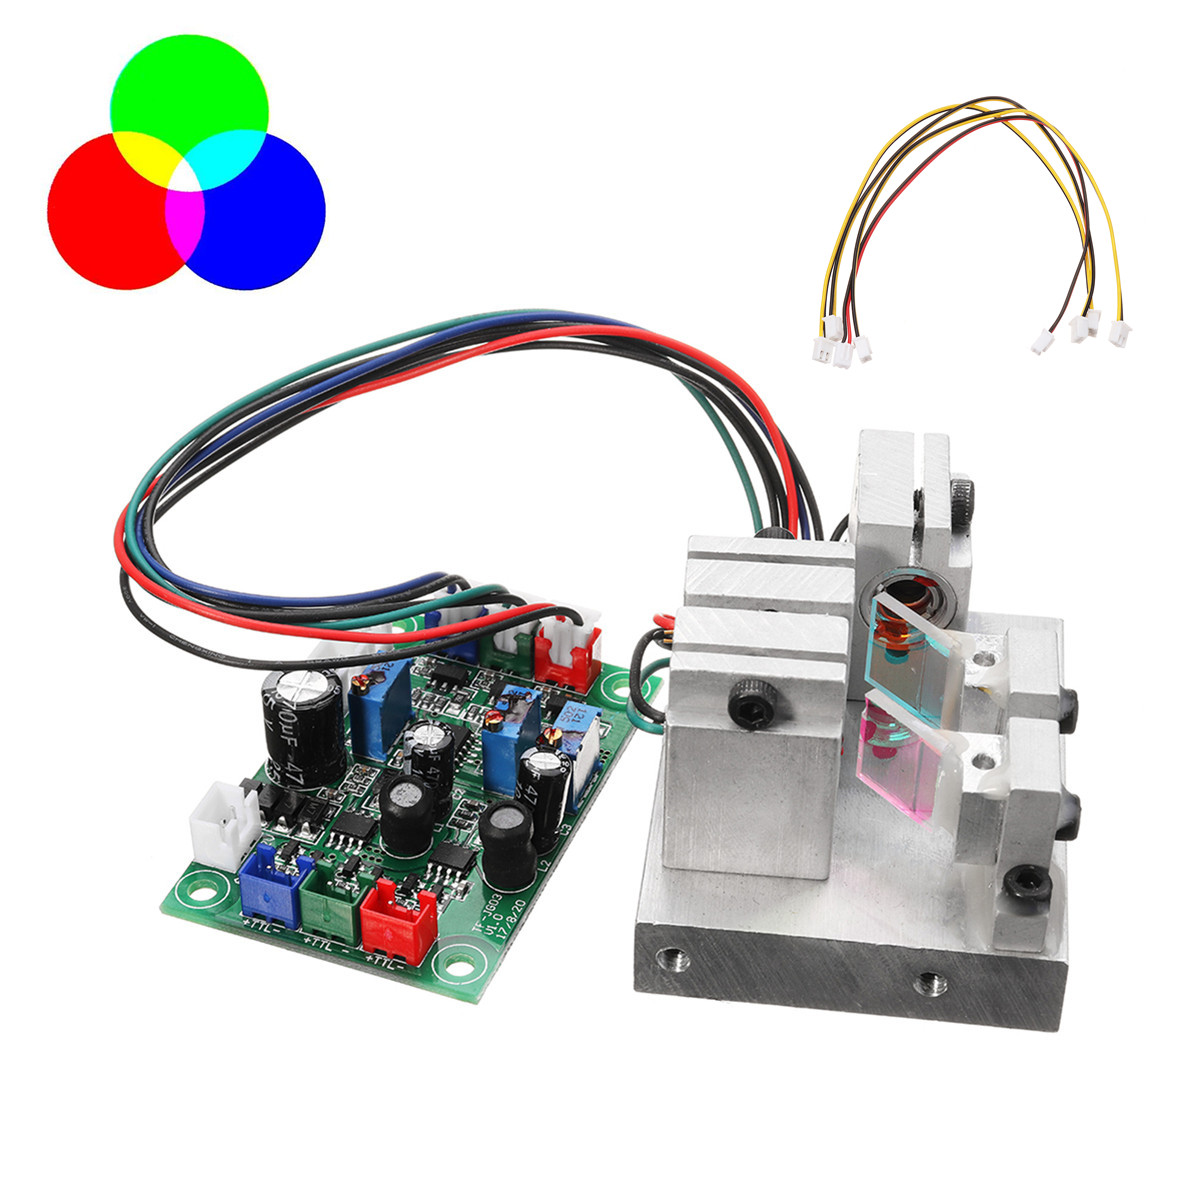 638nm+520nm+450nm With TTL Driver Board RGB 300mW White Laser Module Modulation Temperature Protection Precision Science638nm+520nm+450nm With TTL Driver Board RGB 300mW White Laser Module Modulation Temperature Protection Precision Science